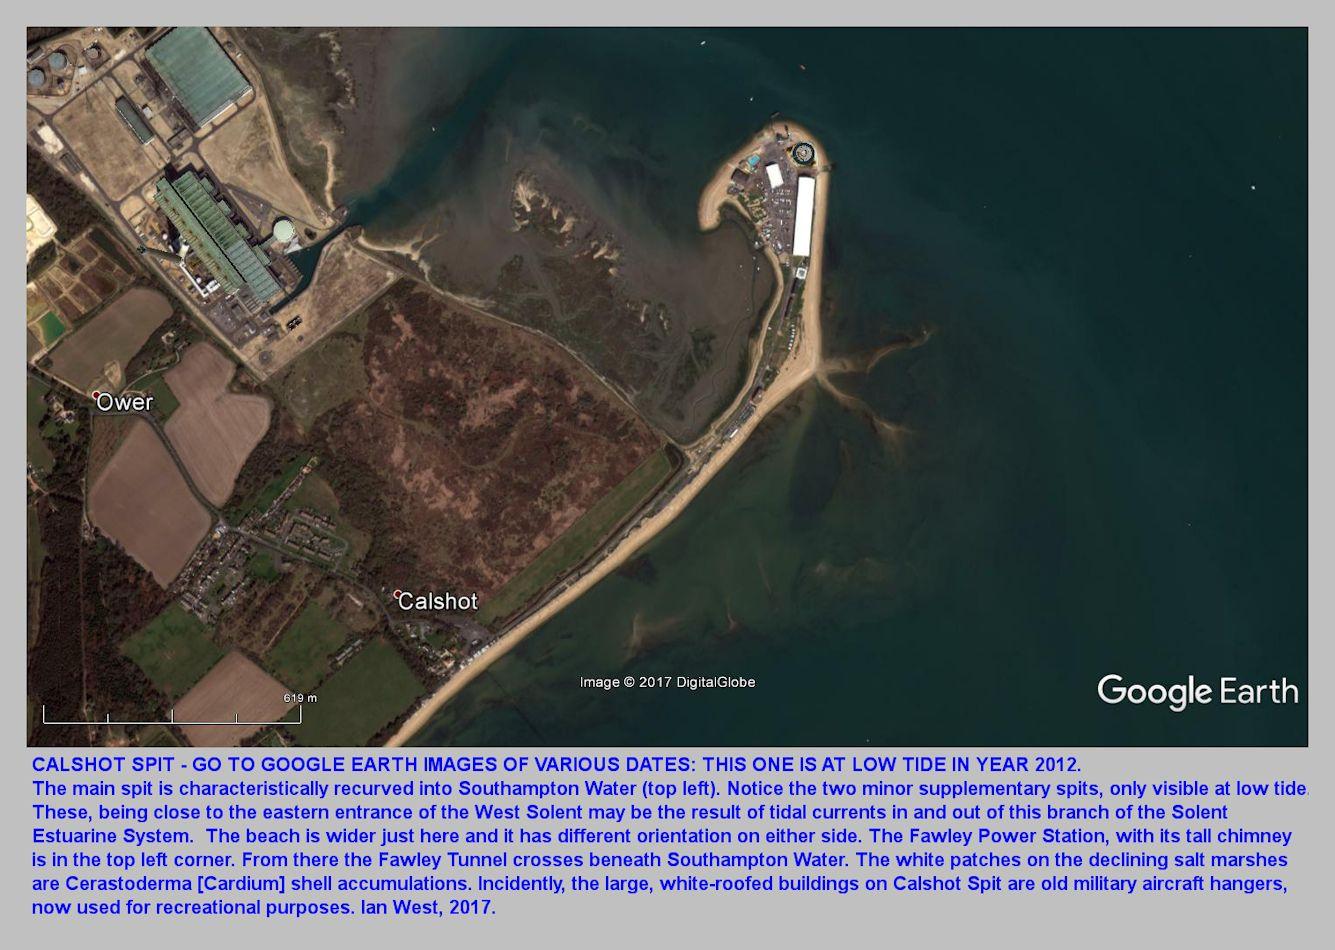 Calshot Spit as shown by GE for 2012, with the photograph taken at low tide